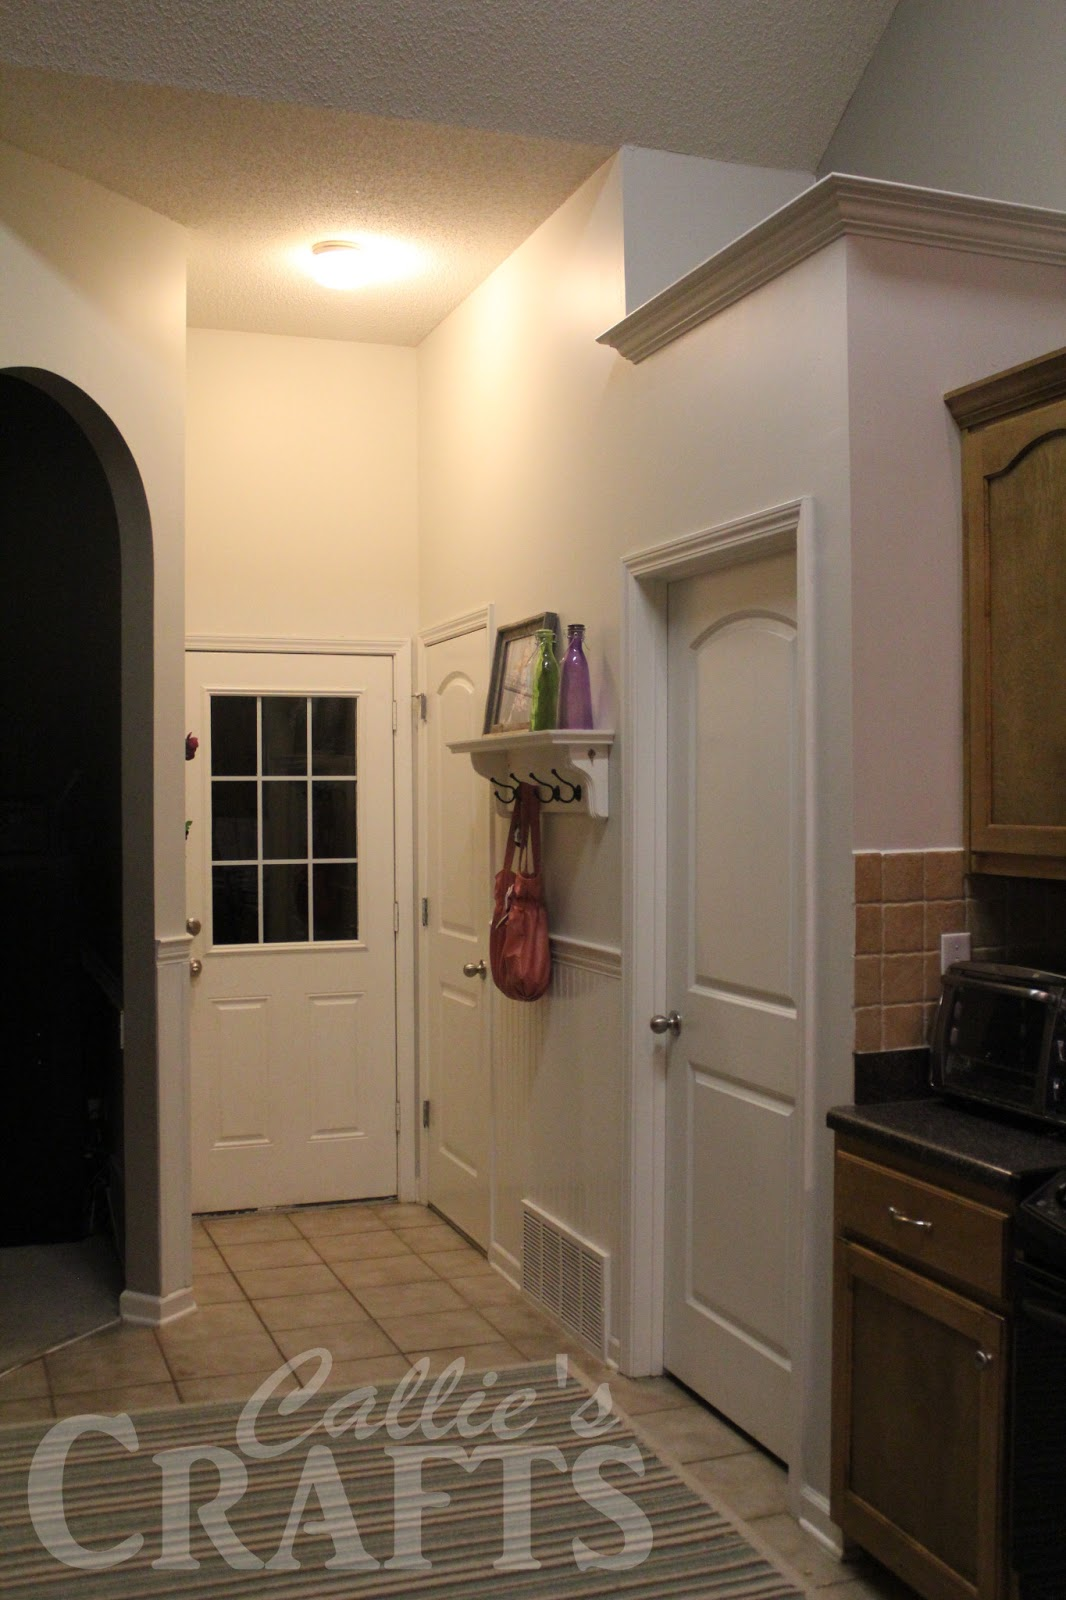 Kitchen Entryway Callies Crafts Mixin It Up In The Kitchen